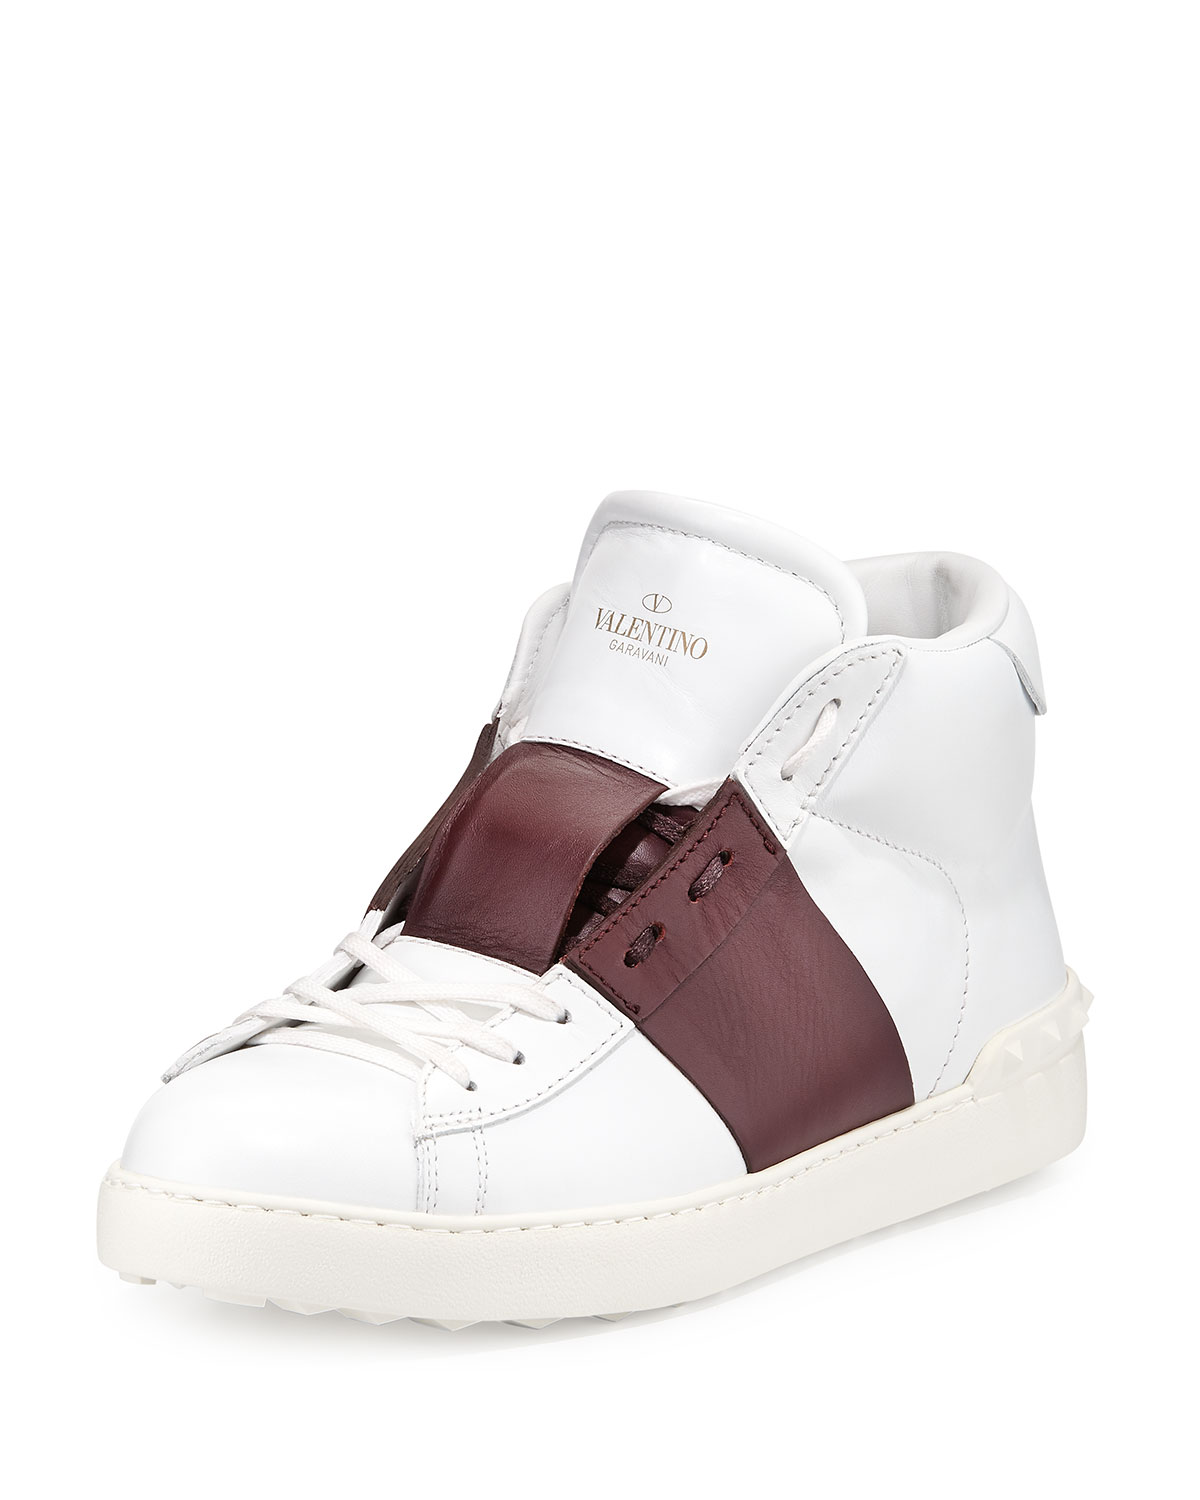 Rockstud Leather High-Top Sneaker, White/Burgundy (White/Red), Size: 40.5EU/7.5D - Valentino